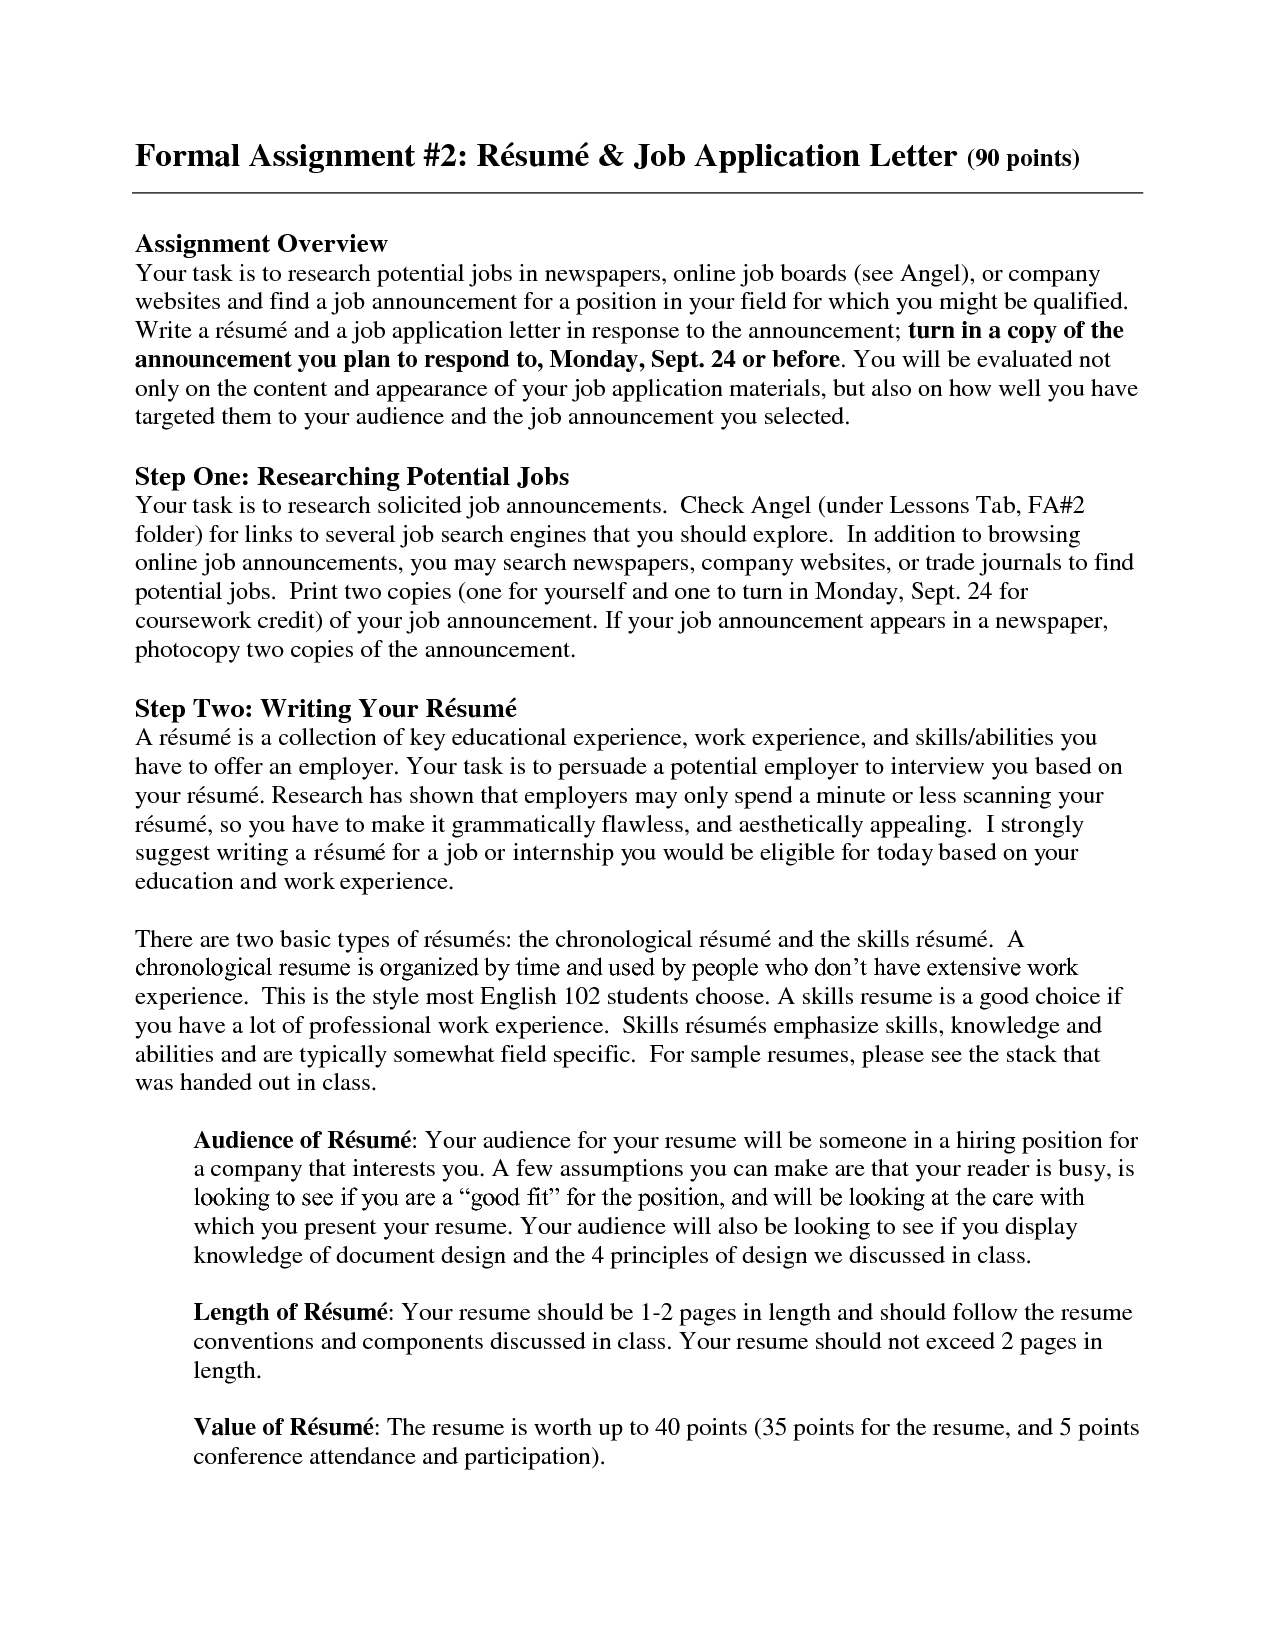 Resume Writing Examples Sample Resume For Applying Job Inspiration Decoration Application